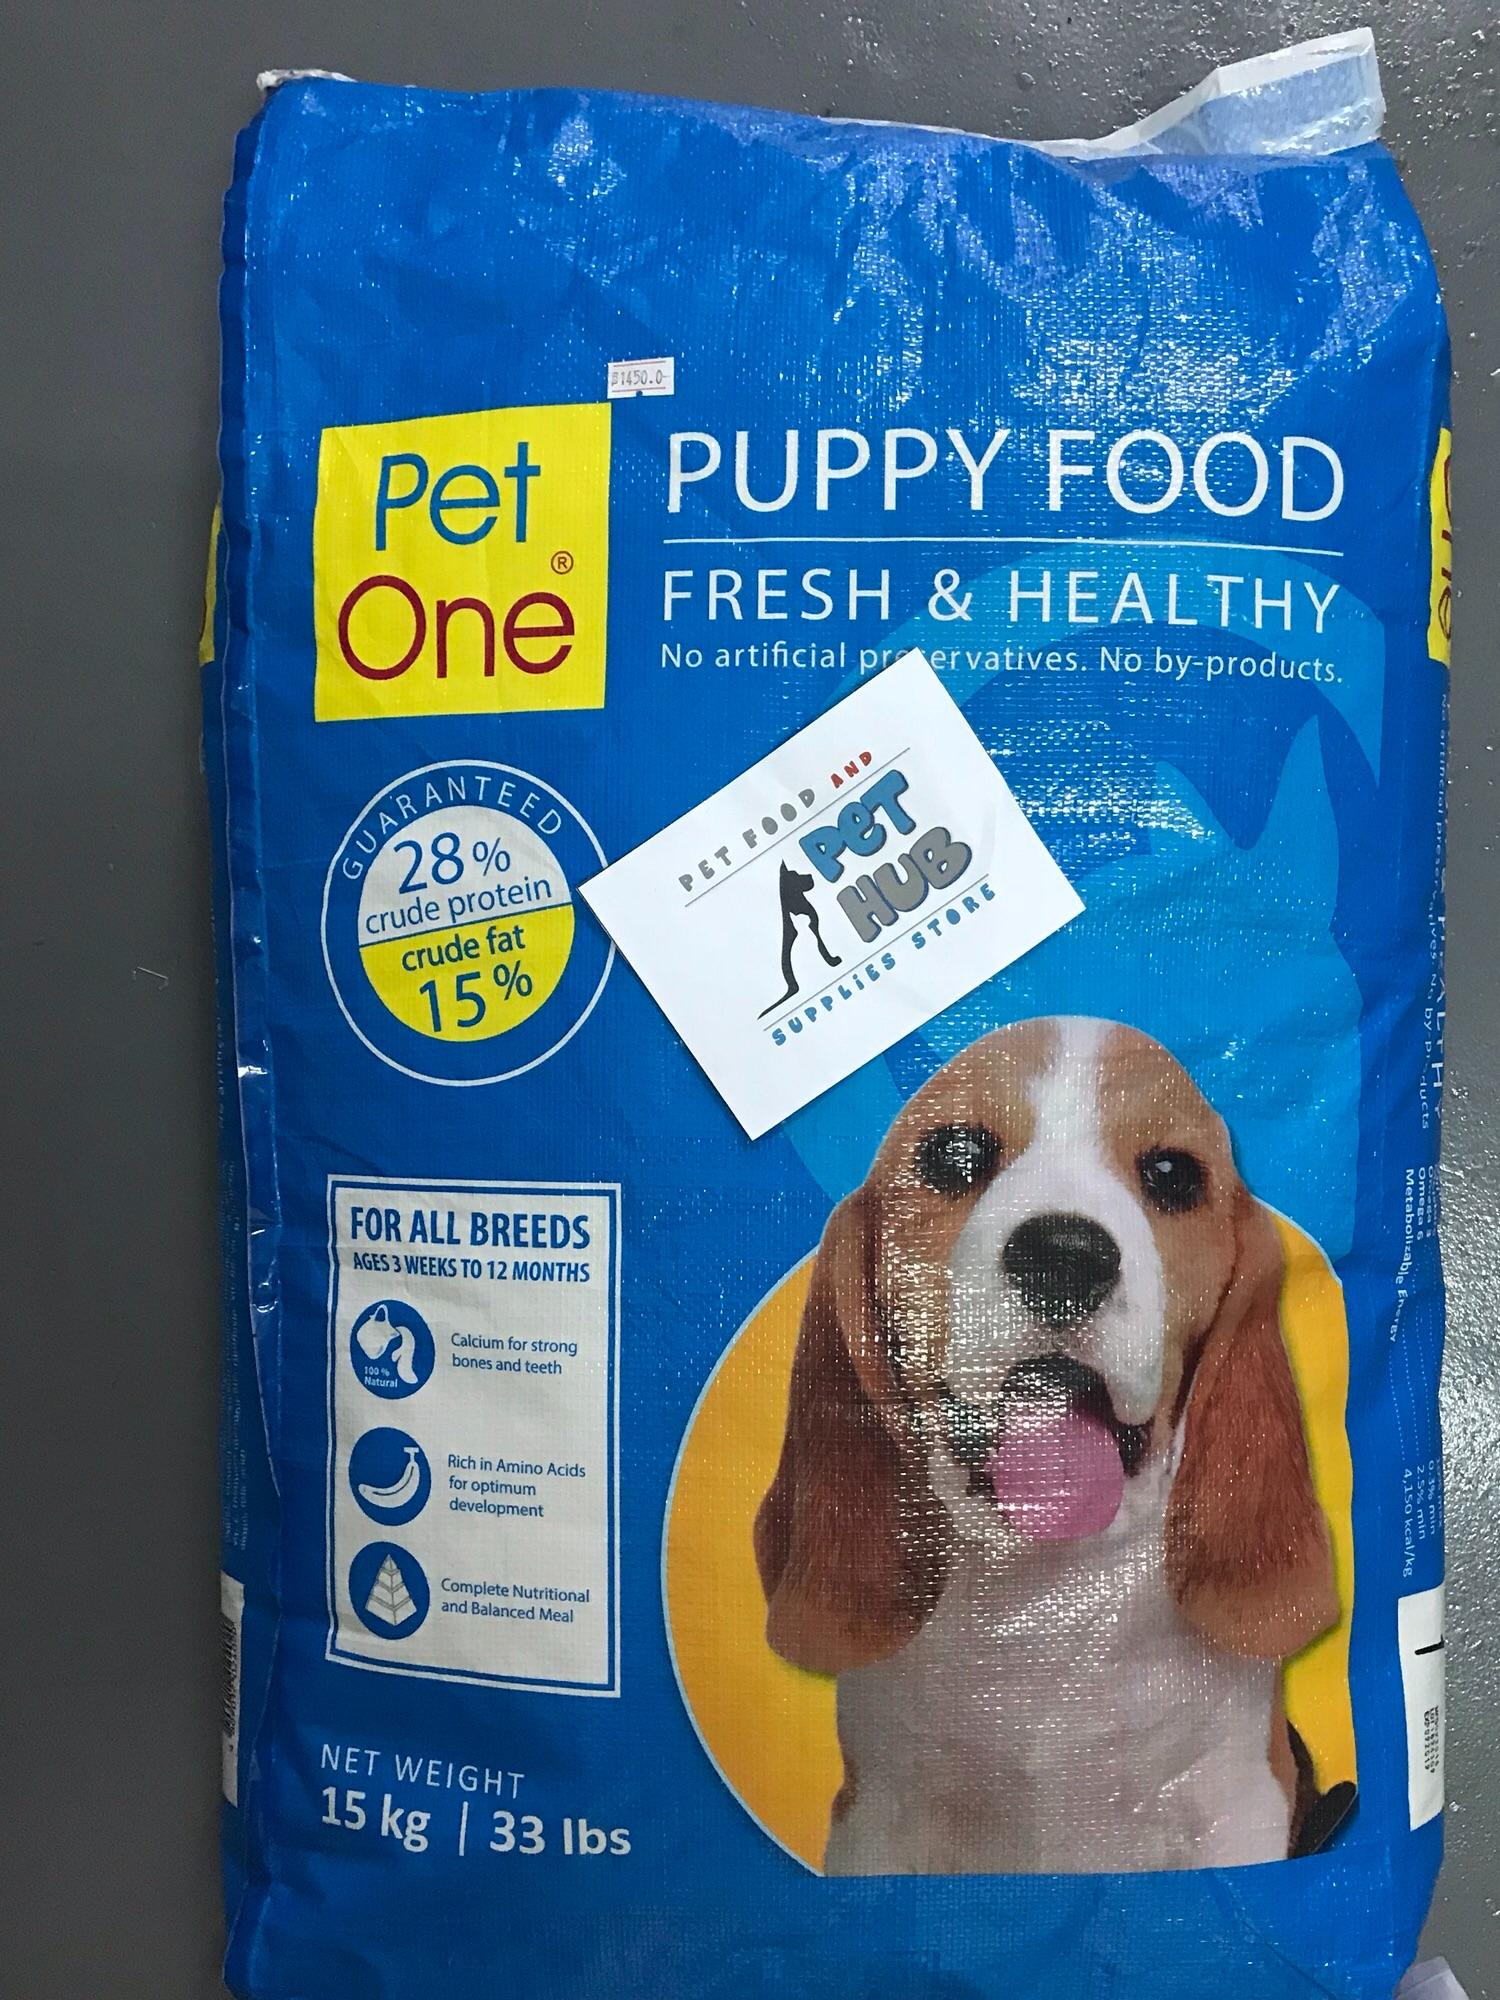 Pet One Proactivo Dog Food 20kg Bag Philippines